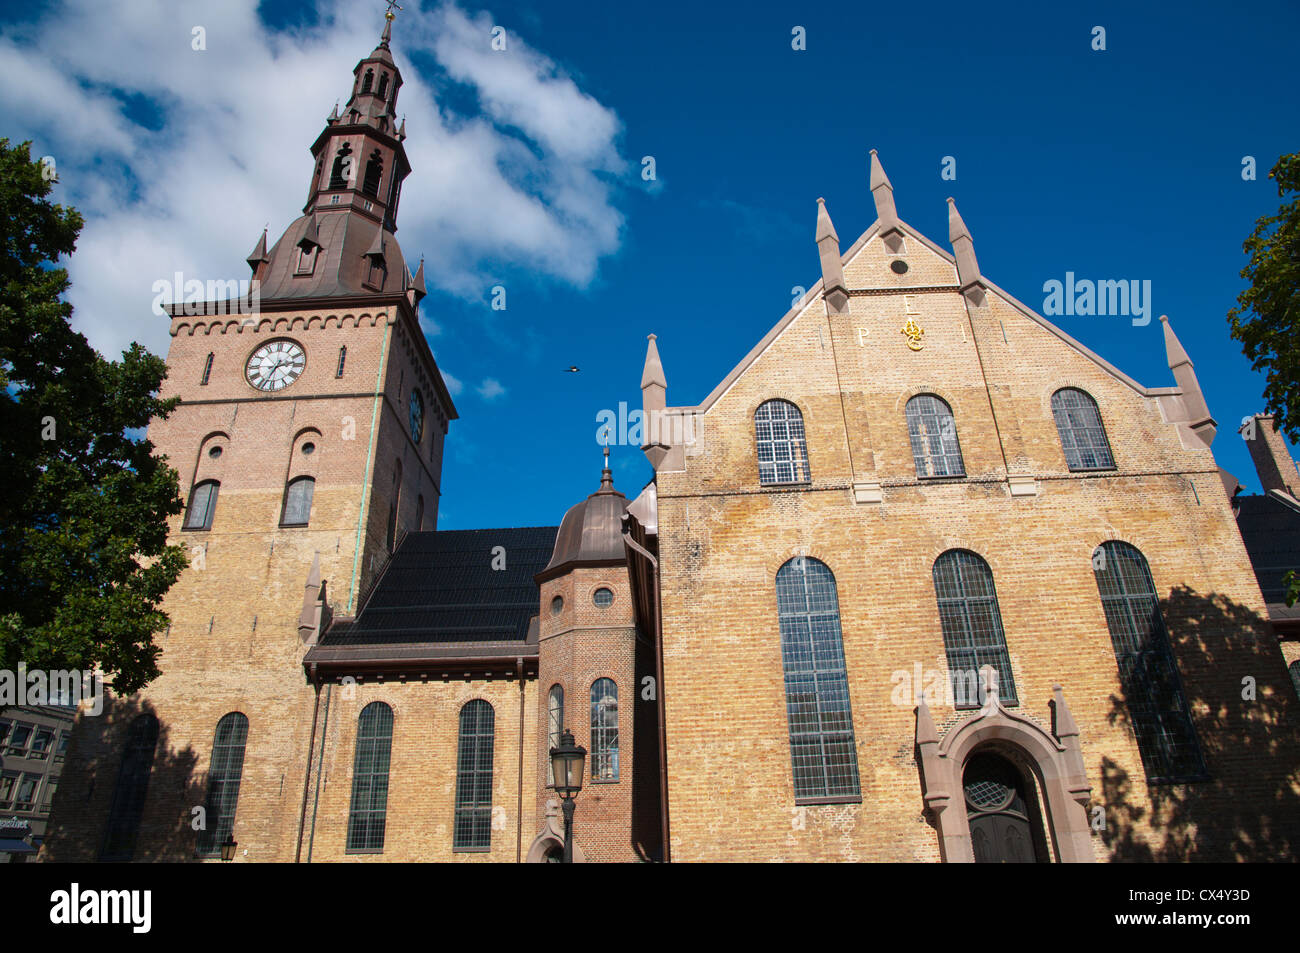 Oslo Domkirke the Cathedral (1697) Sentrum central Oslo Norway Europe - Stock Image